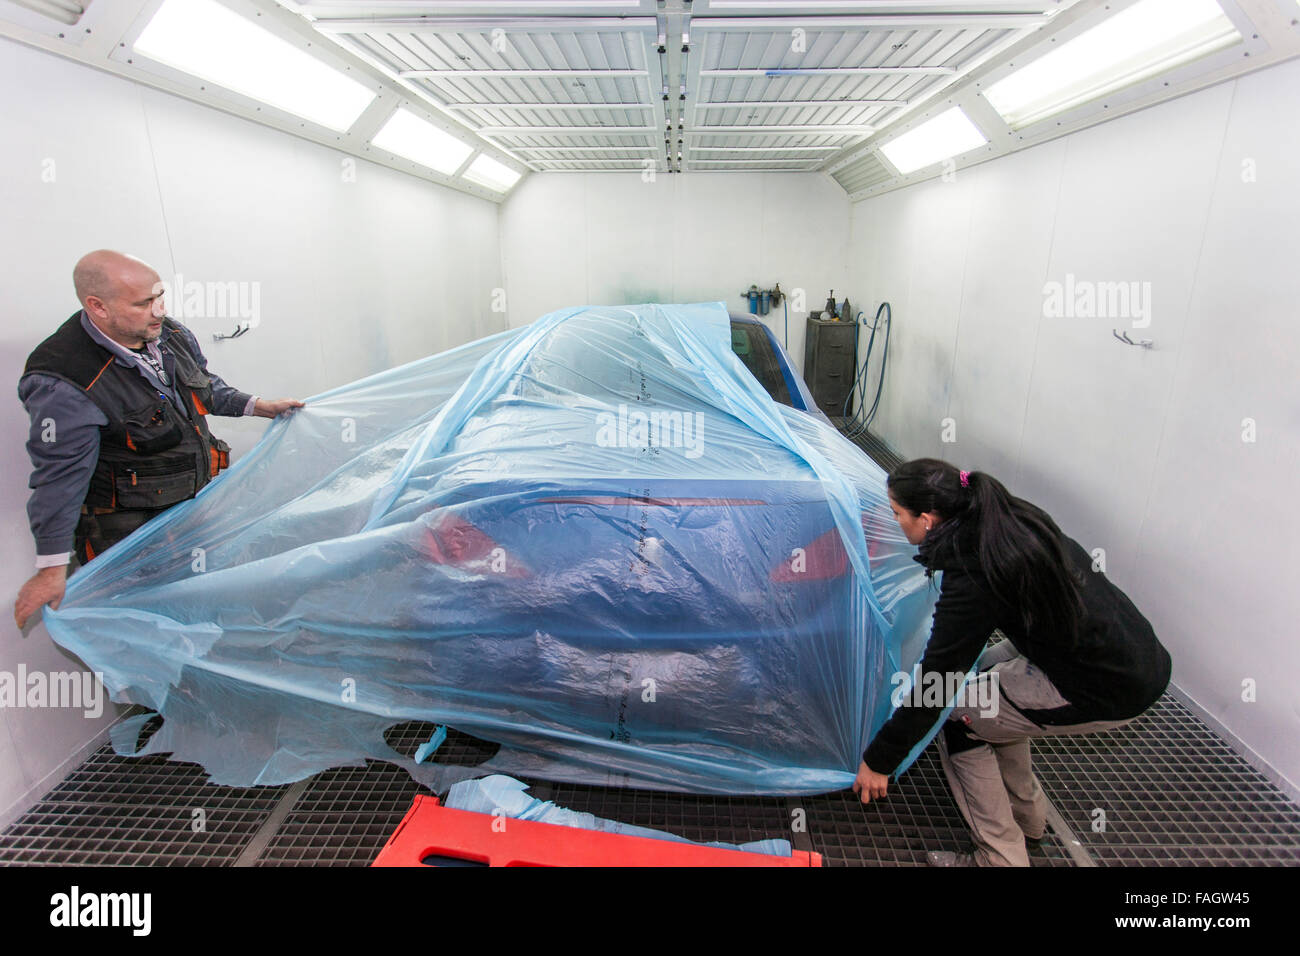 The vehicle is covered in front of the part paintwork. Stock Photo